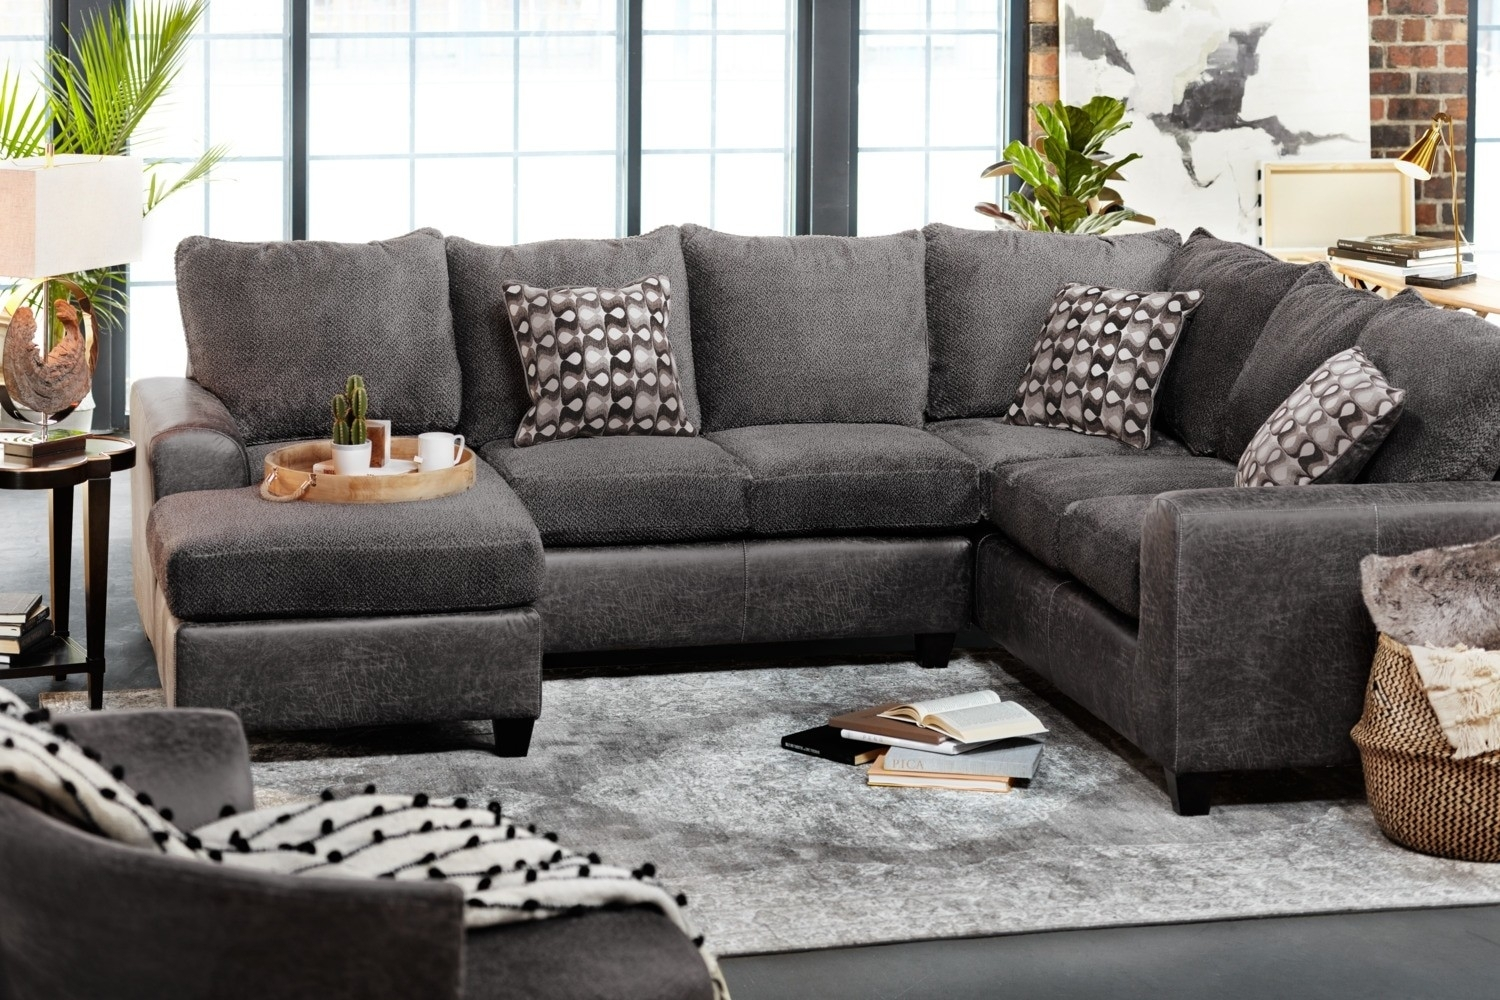 3 Piece Sectional Malbry Point W Laf Chaise Living Spaces 223533 0 Inside Malbry Point 3 Piece Sectionals With Laf Chaise (View 2 of 30)